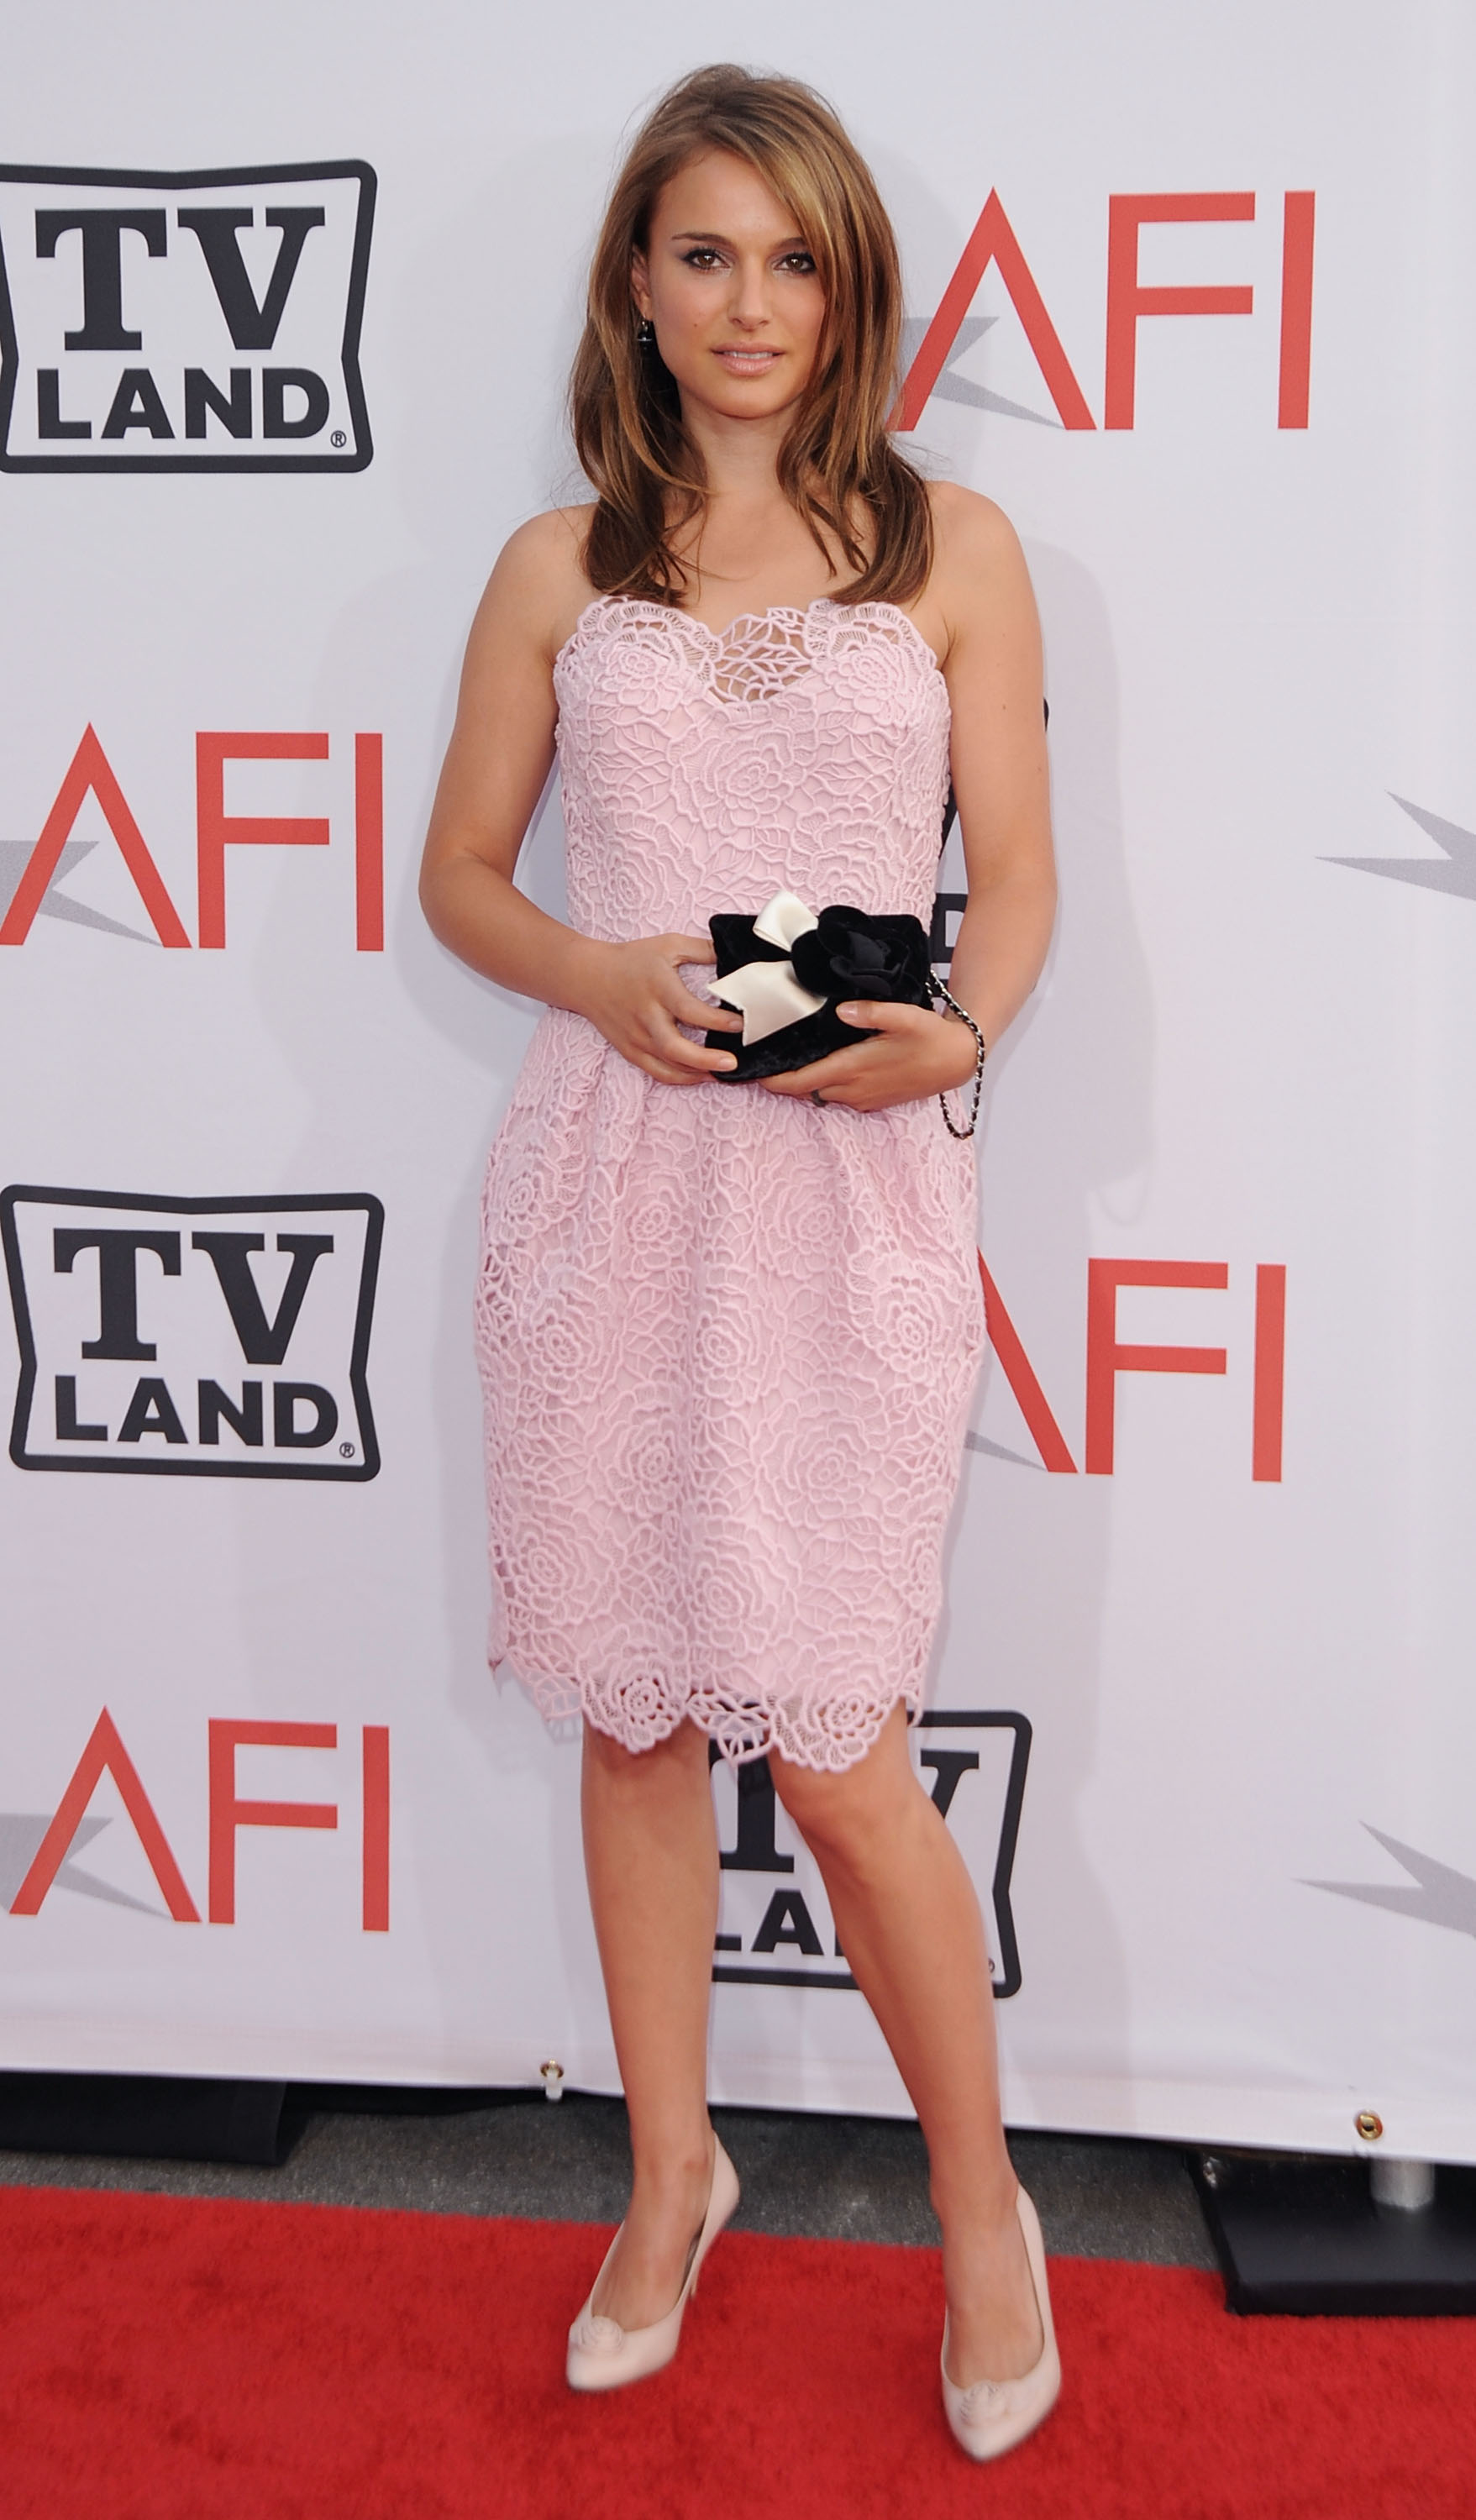 02445_Natalie_Portman_38th_afi_life_achievement_award_140_122_517lo.jpg